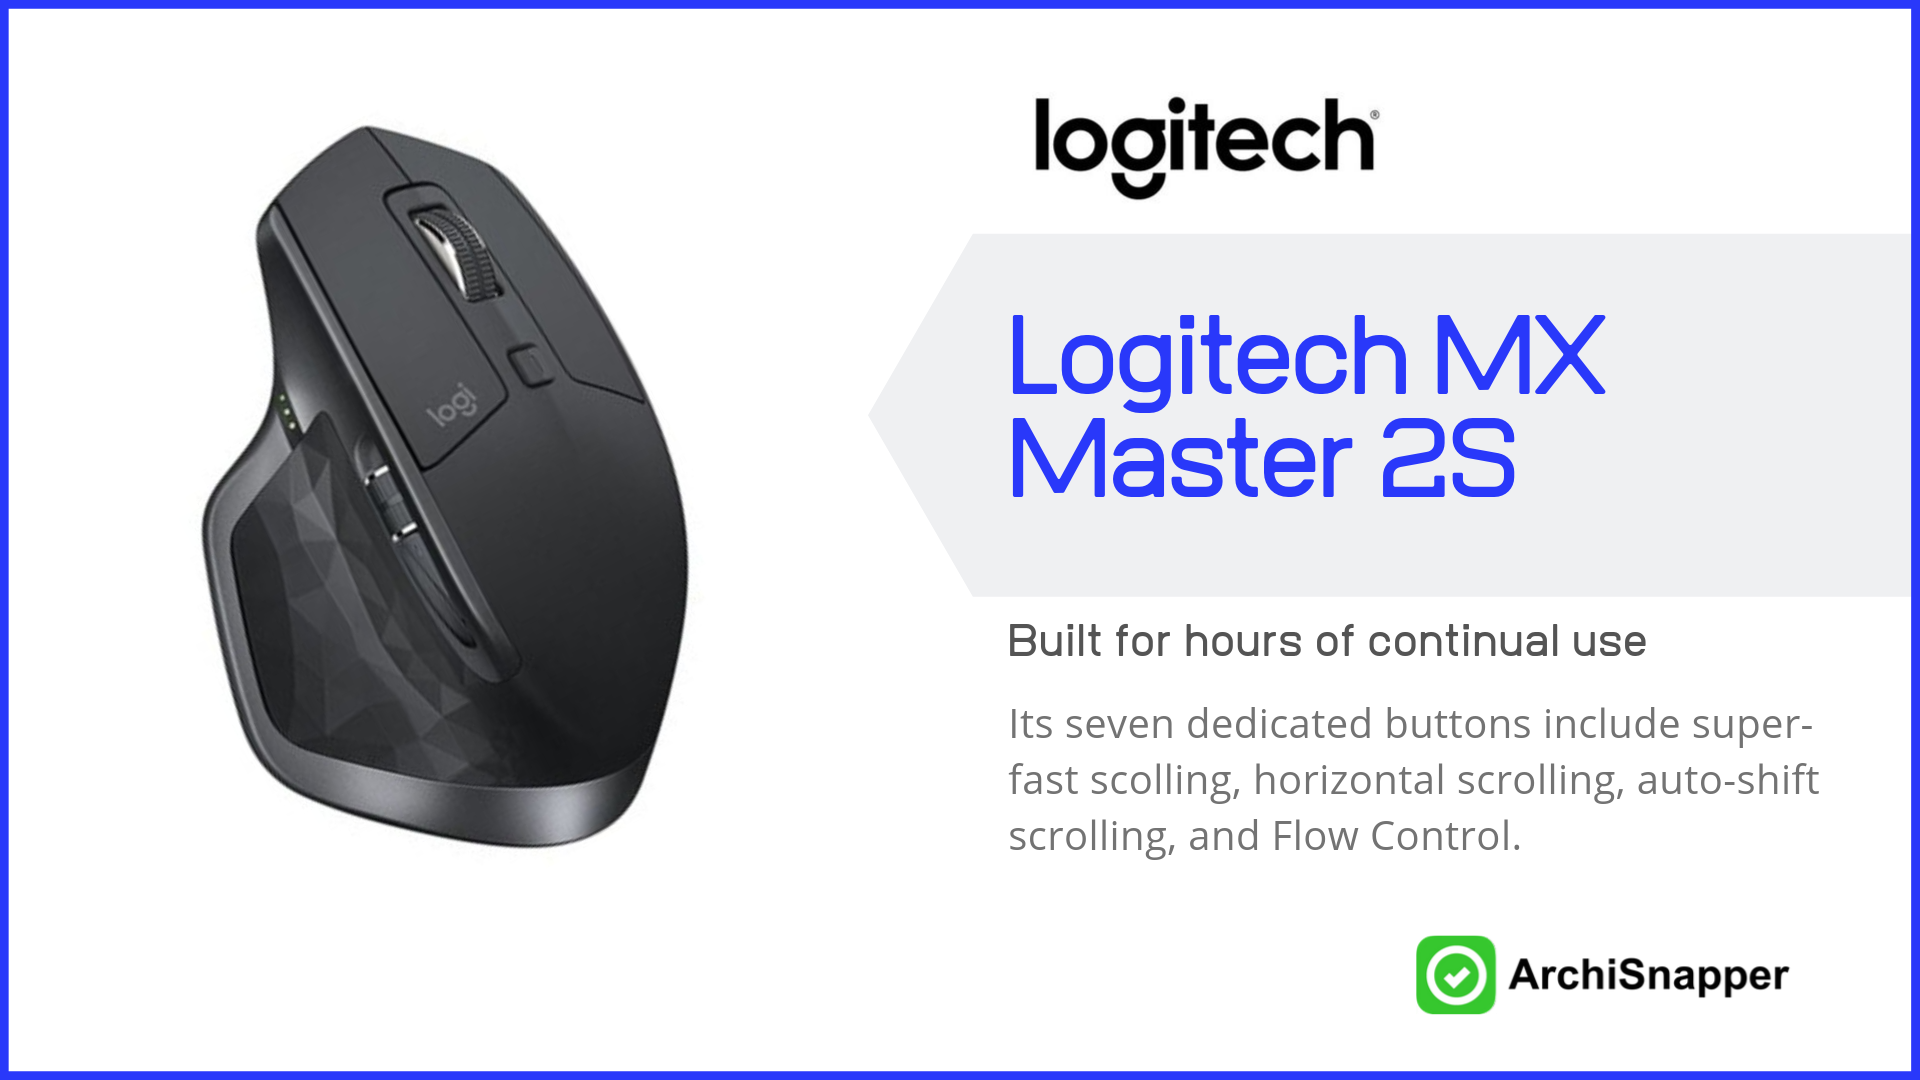 Logitech MX Master 2S | List of the 15 must-have tech tools and accessories ideal for architects presented by Archisnapper